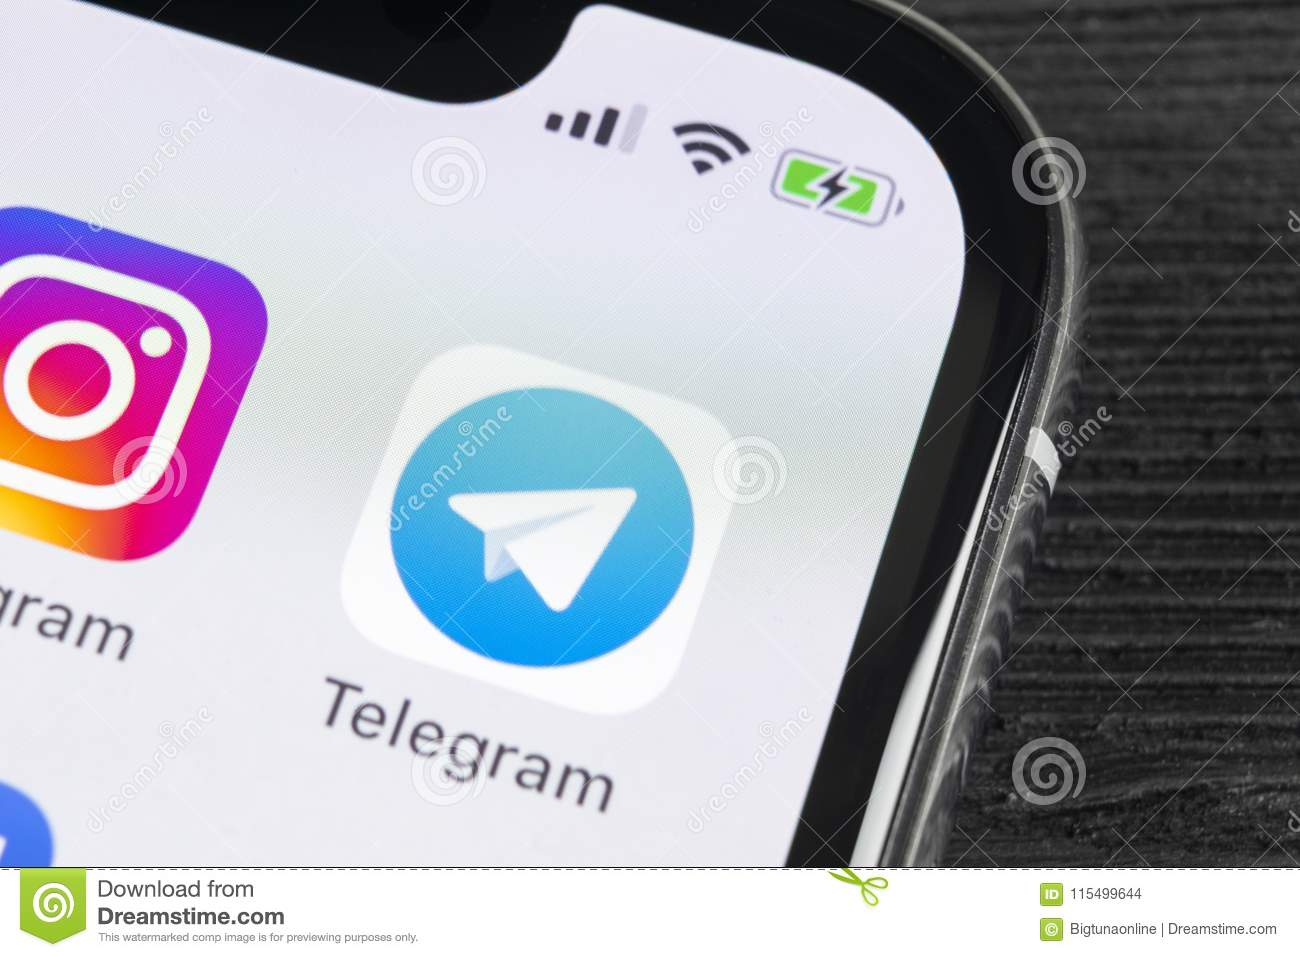 Telegram Application Icon On Apple Iphone X Screen Close Up